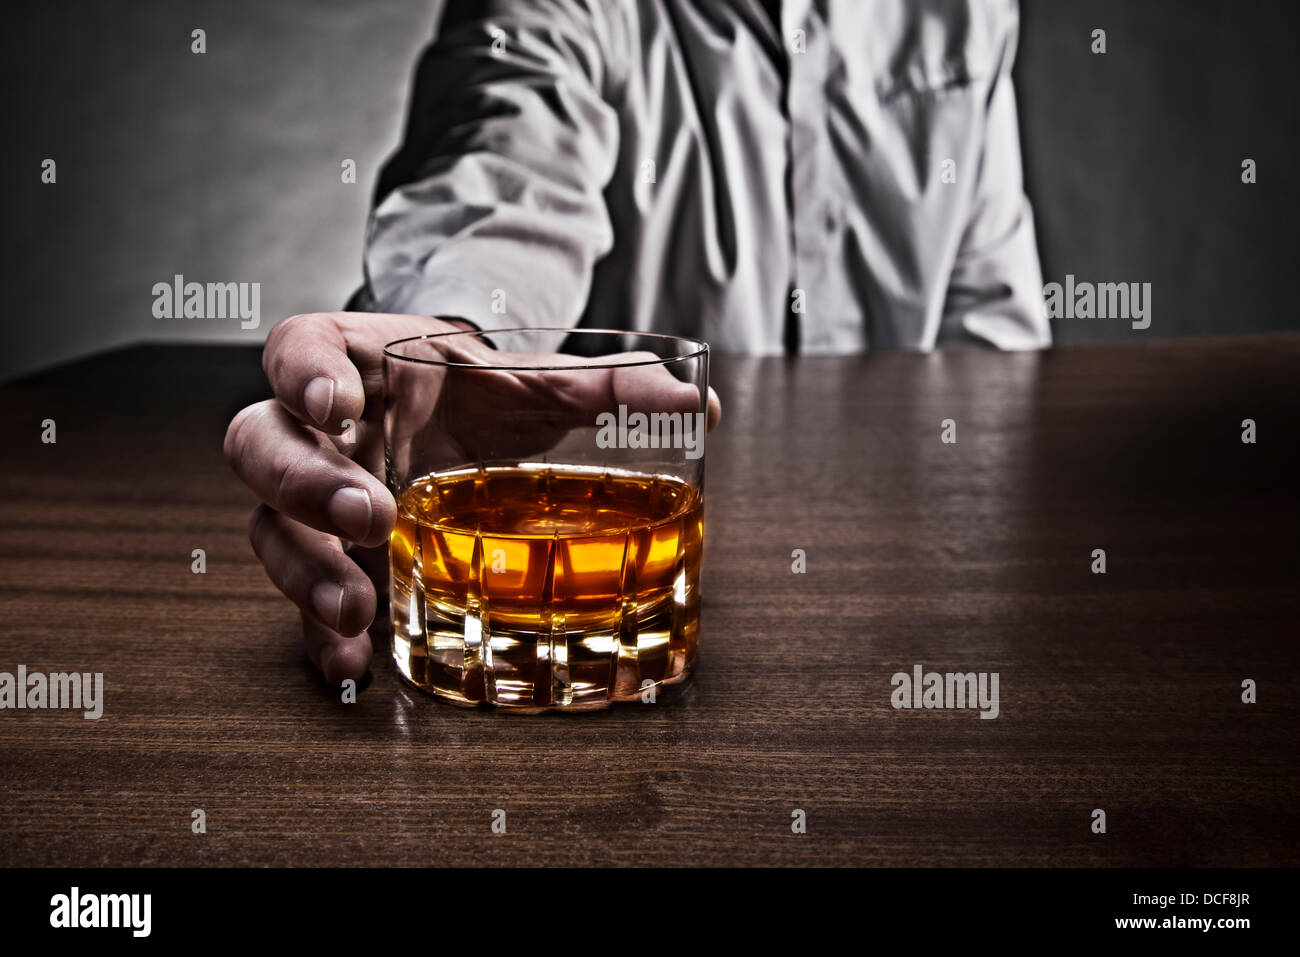 Hand of a man reaching for a glass of whiskey, which stands on a table. Stock Photo